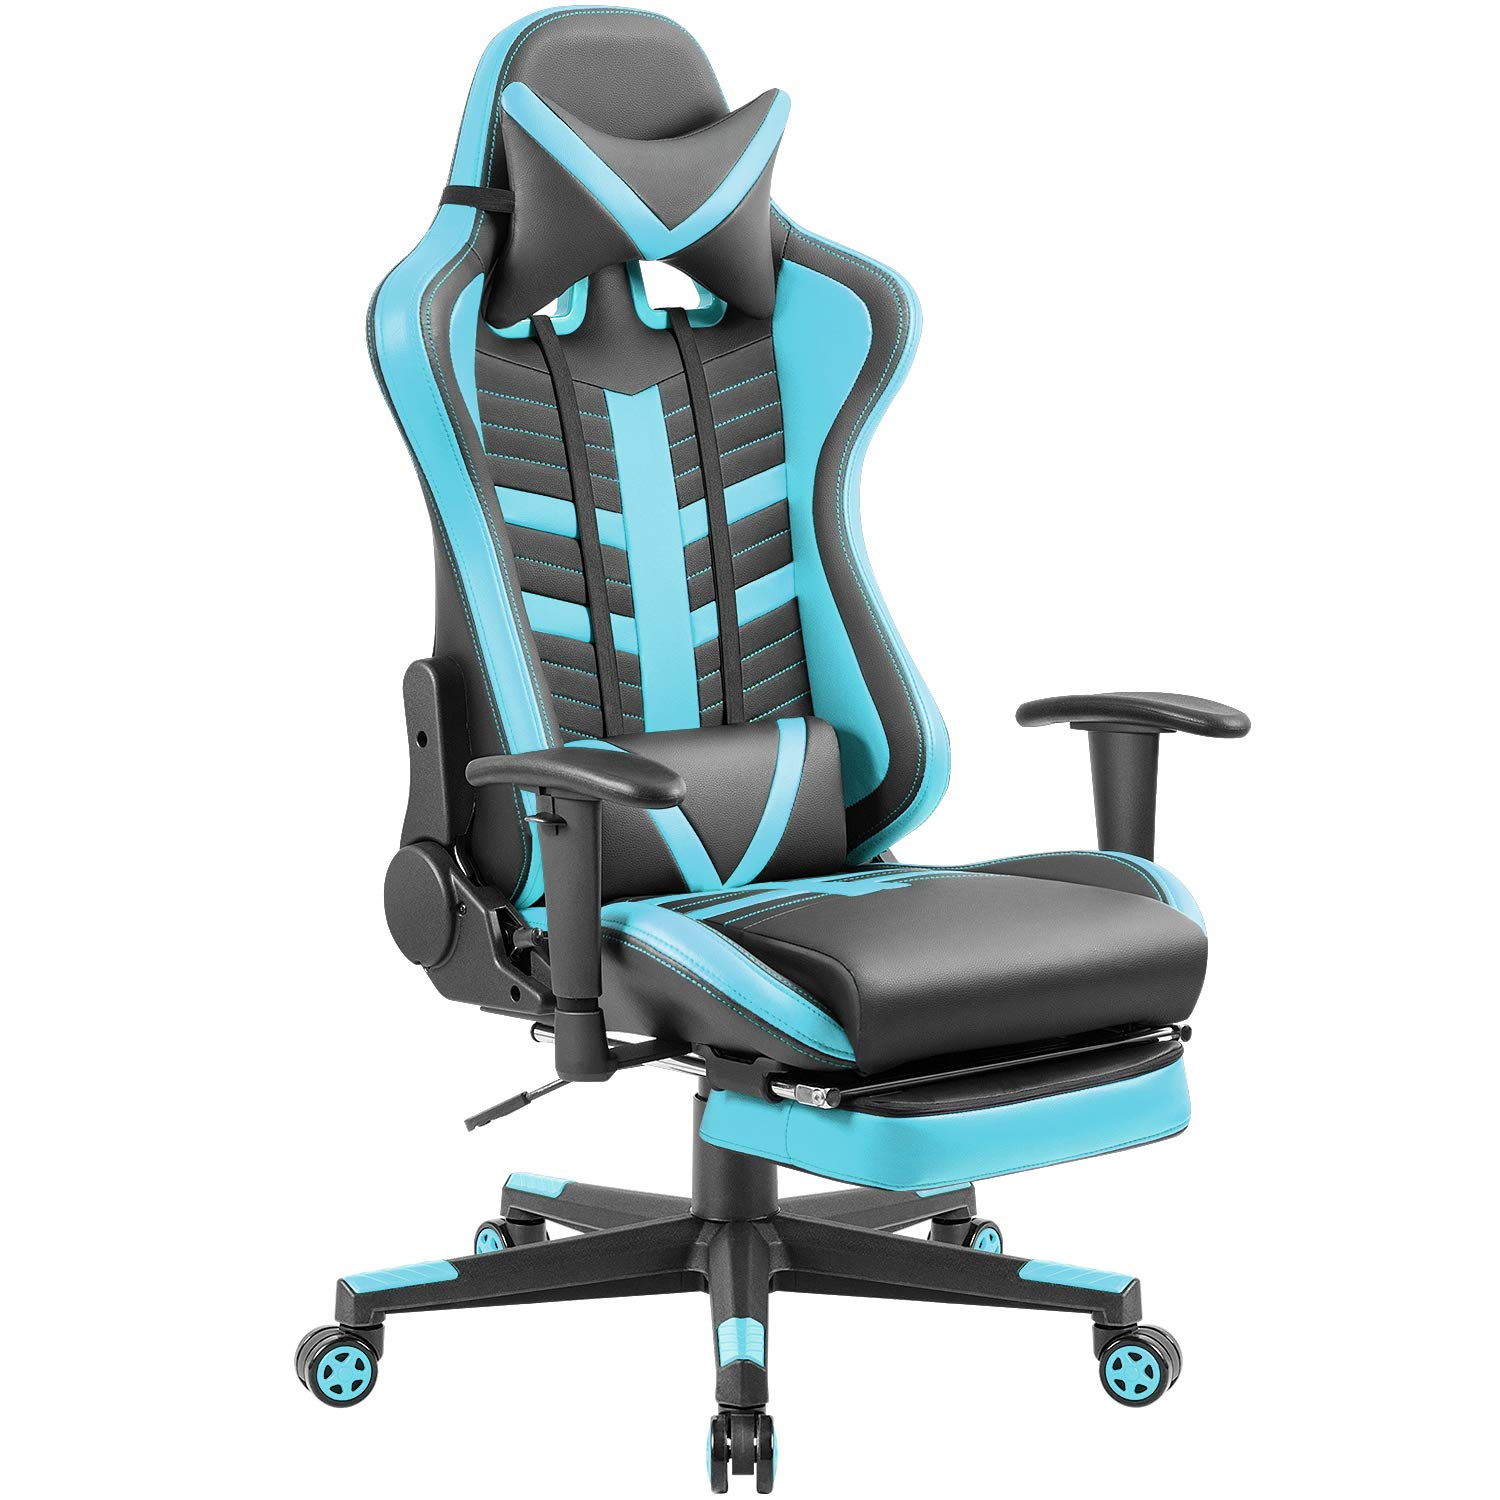 Homall Gaming Chair Ergonomic High-Back Racing Chair Pu Leather Bucket Seat,Computer Swivel Office Chair Headrest and Lumbar Support Executive Desk Chair with Footrest (Blue)